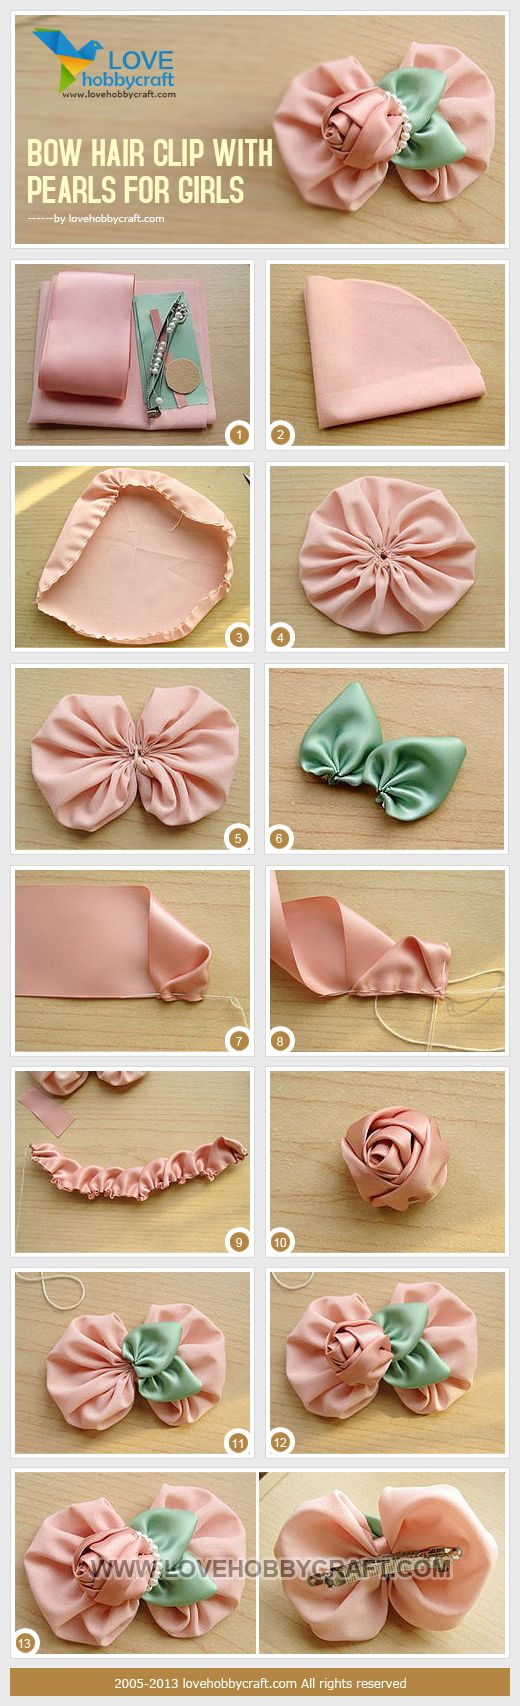 Bow hair clip with pearls